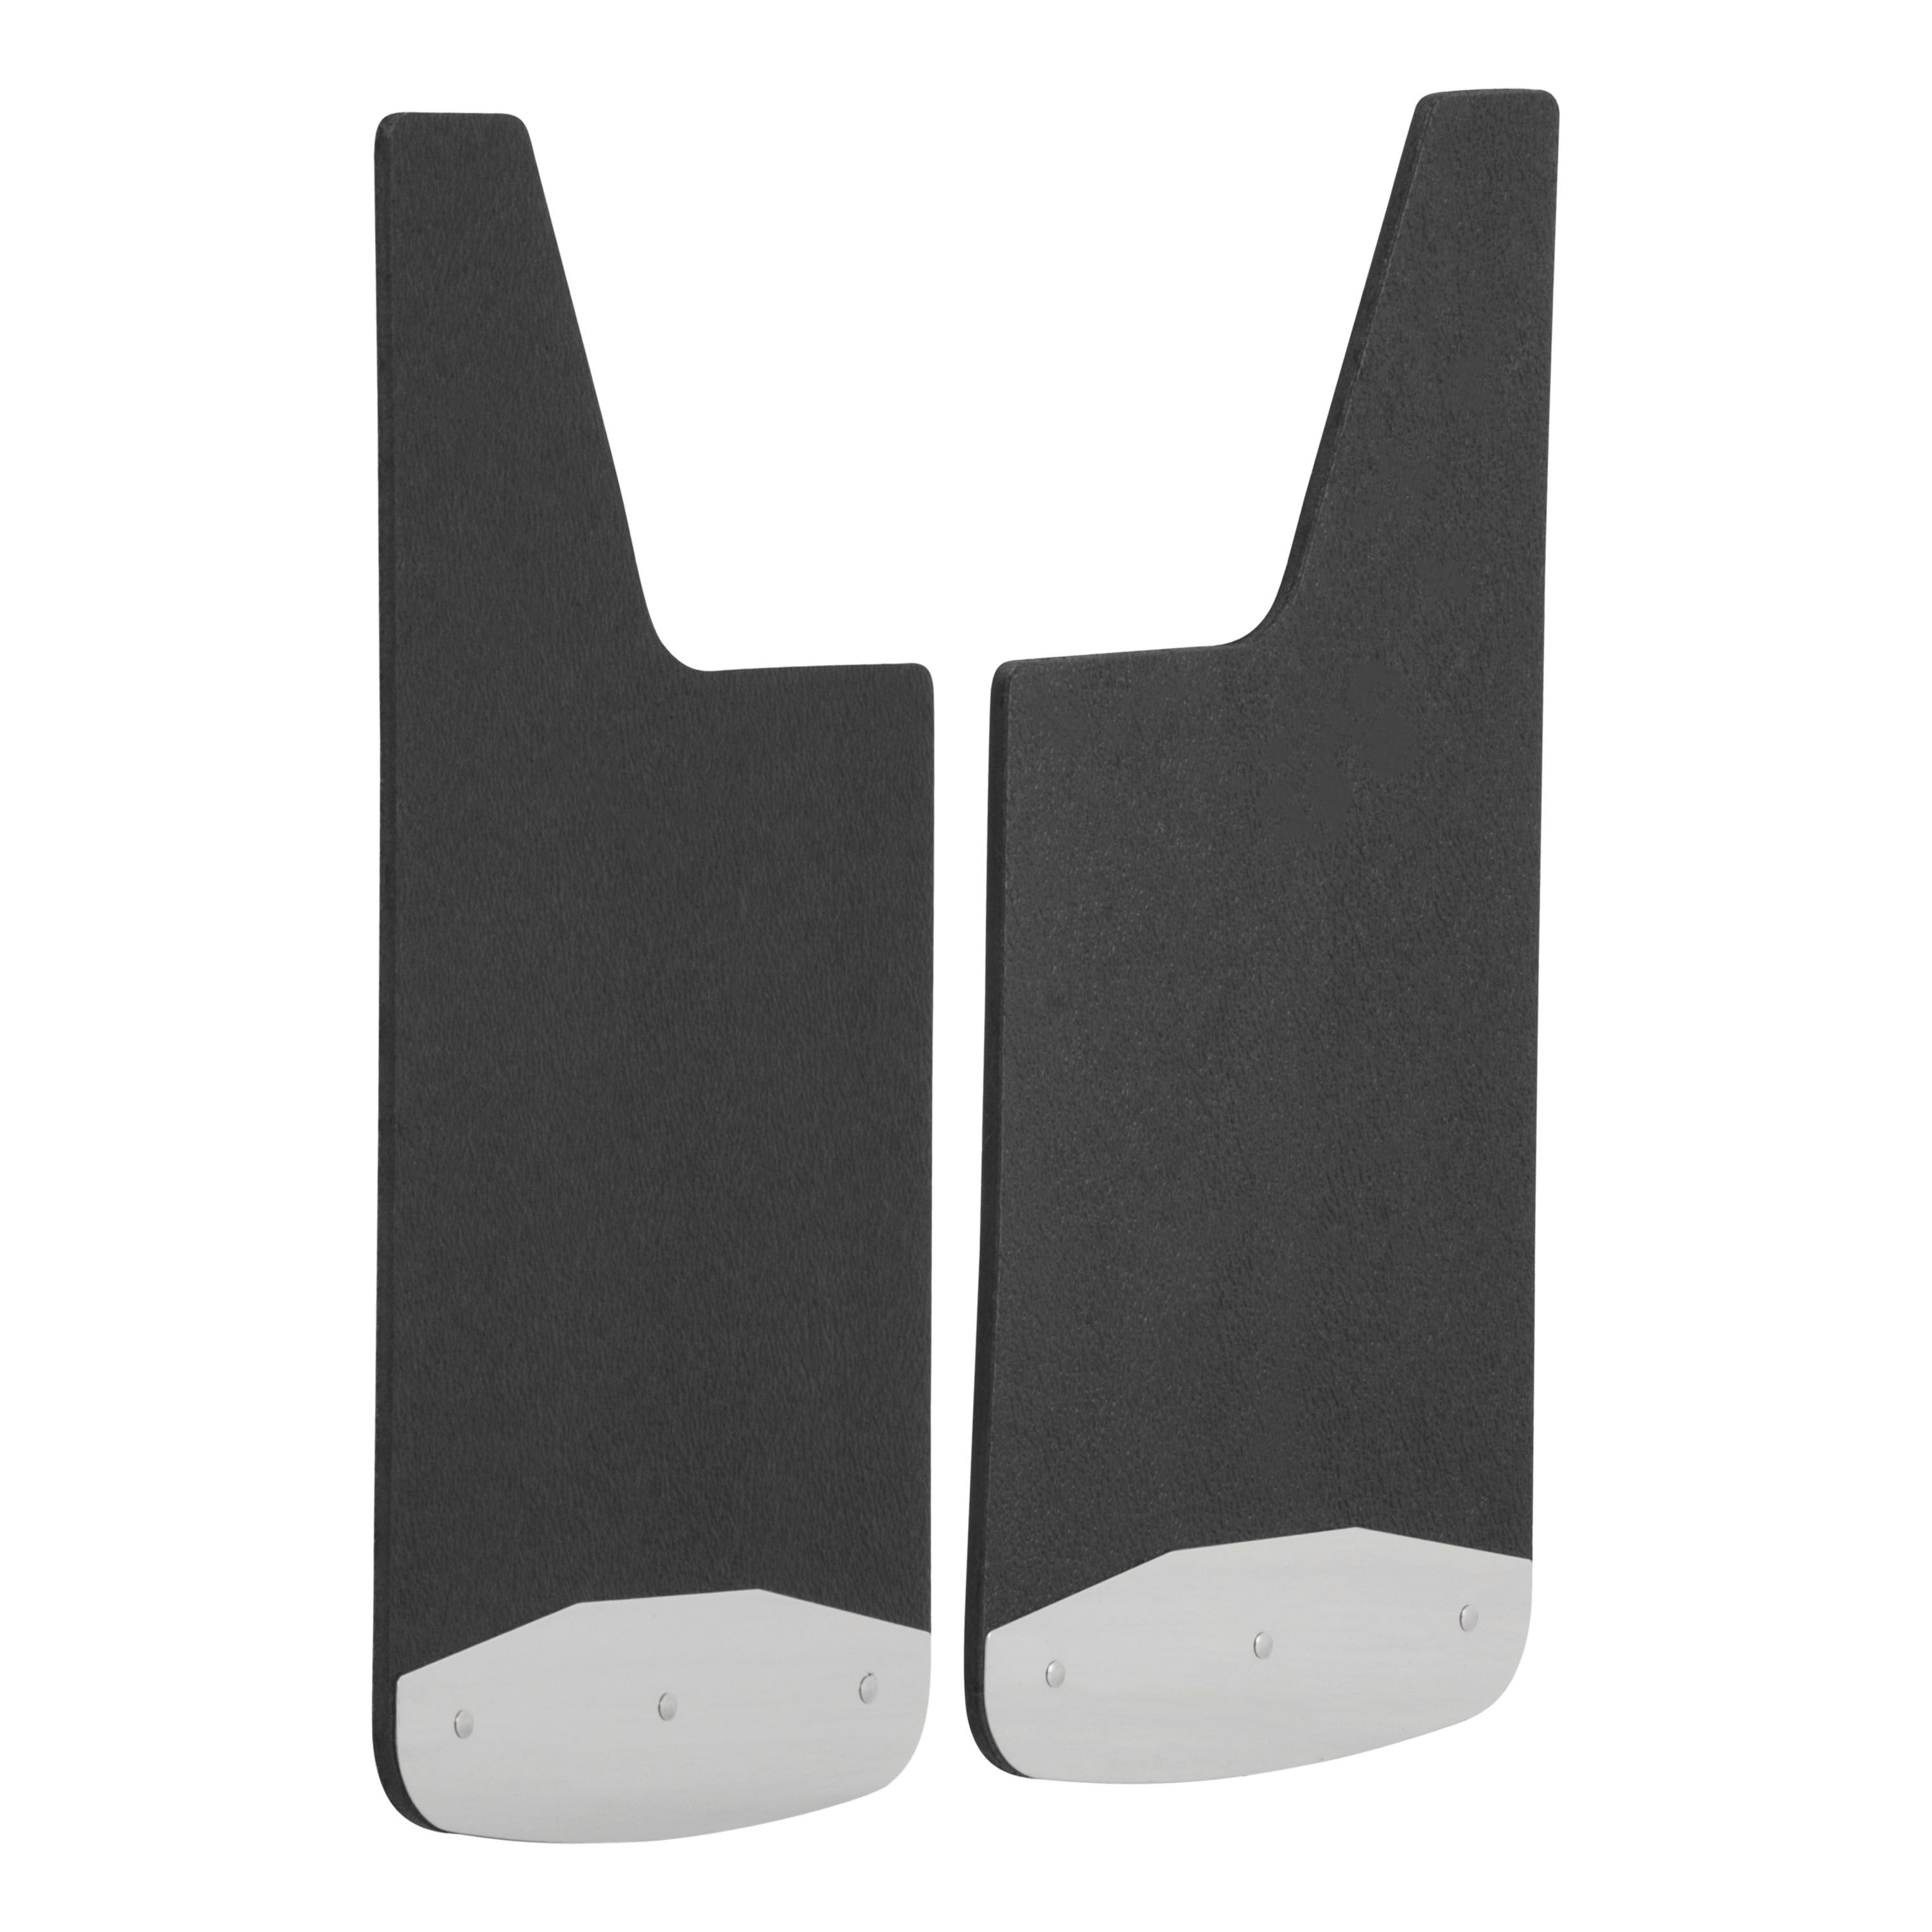 Luverne 251723 - Textured Rubber Mud Guards